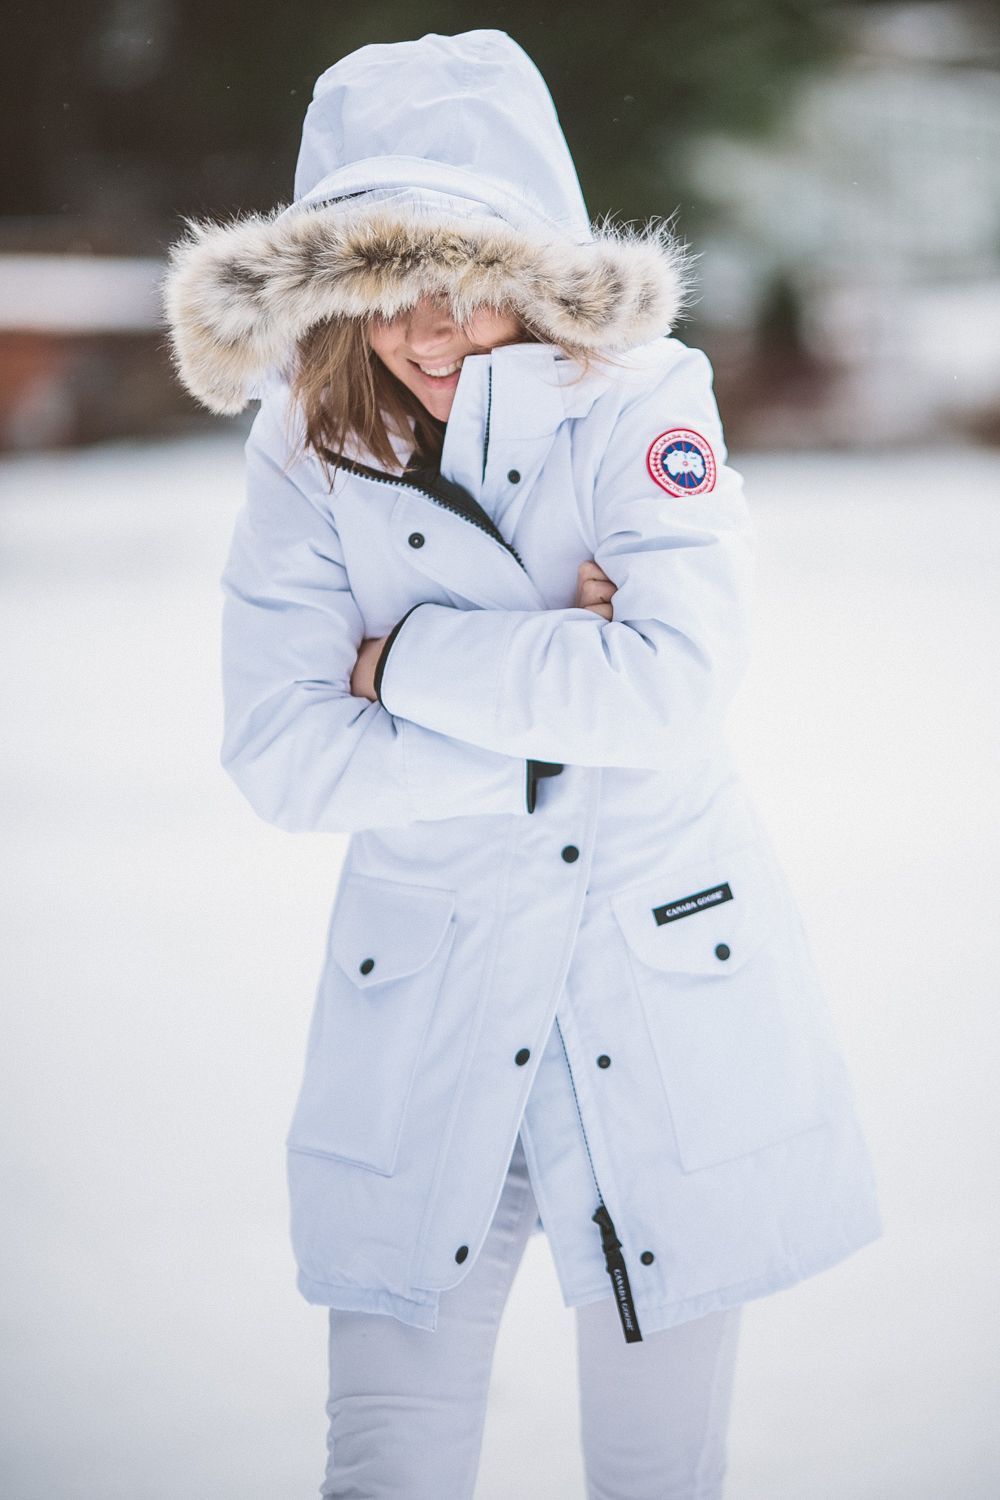 darya kamalova thecablook fashion lifestyle blogger from thecablook com in the mountains wearing moonboots and canada goose trillium white downcoat and asos jeans in italy under the snow-9174